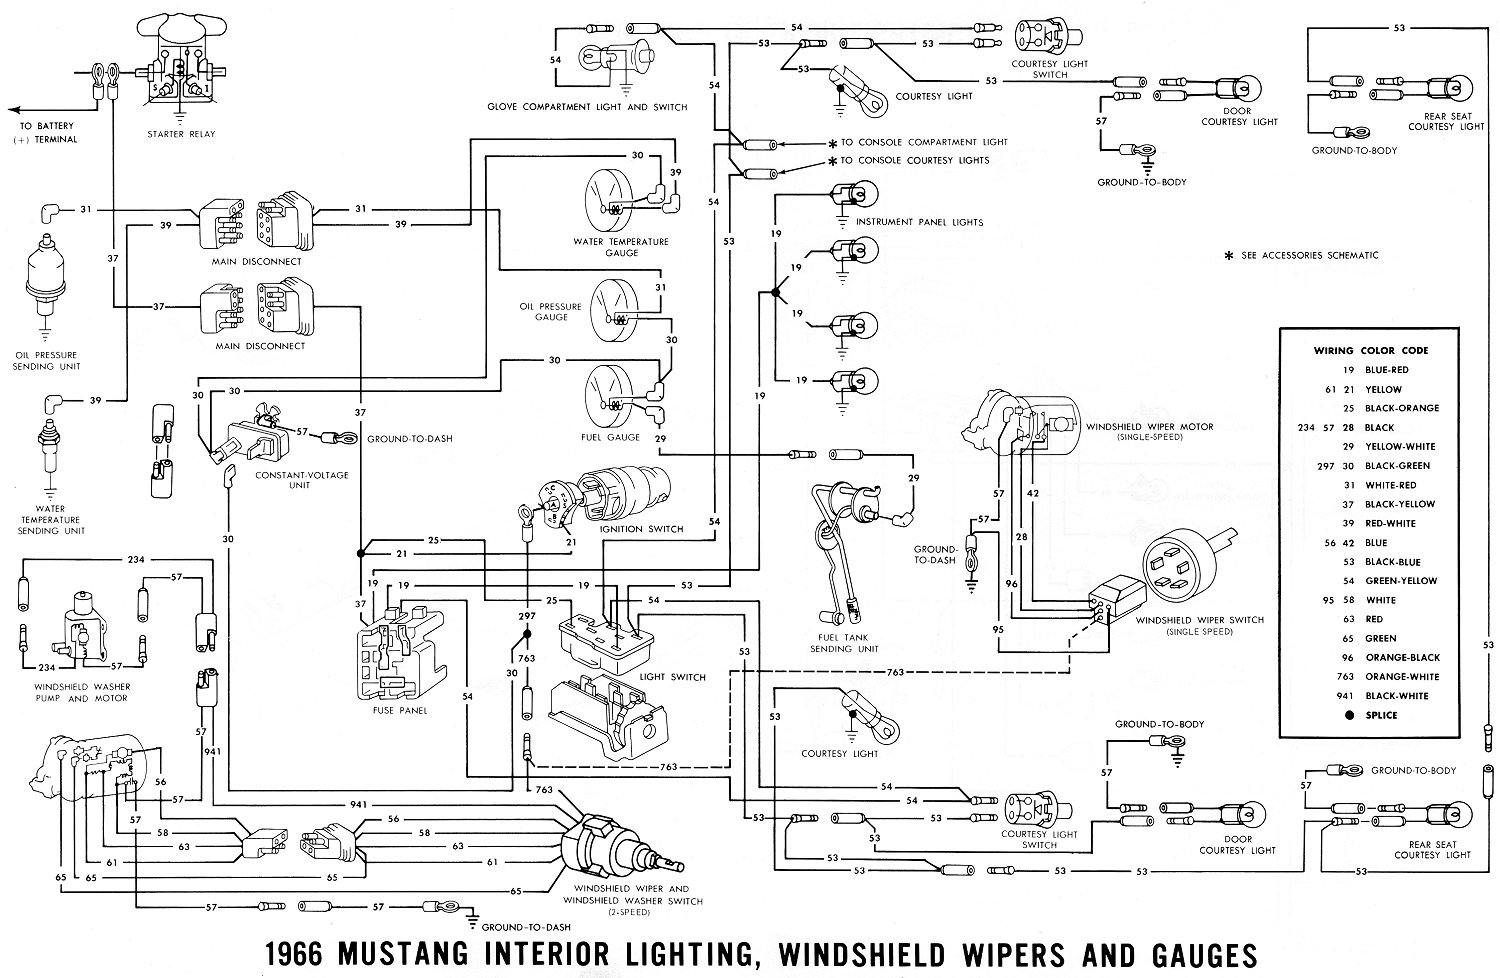 isb 300 pcm wiring diagram wiring diagram 1998 Ford Contour PCM Wiring Harness Diagram isb 300 pcm wiring diagram wiring diagramisb 300 pcm wiring diagram